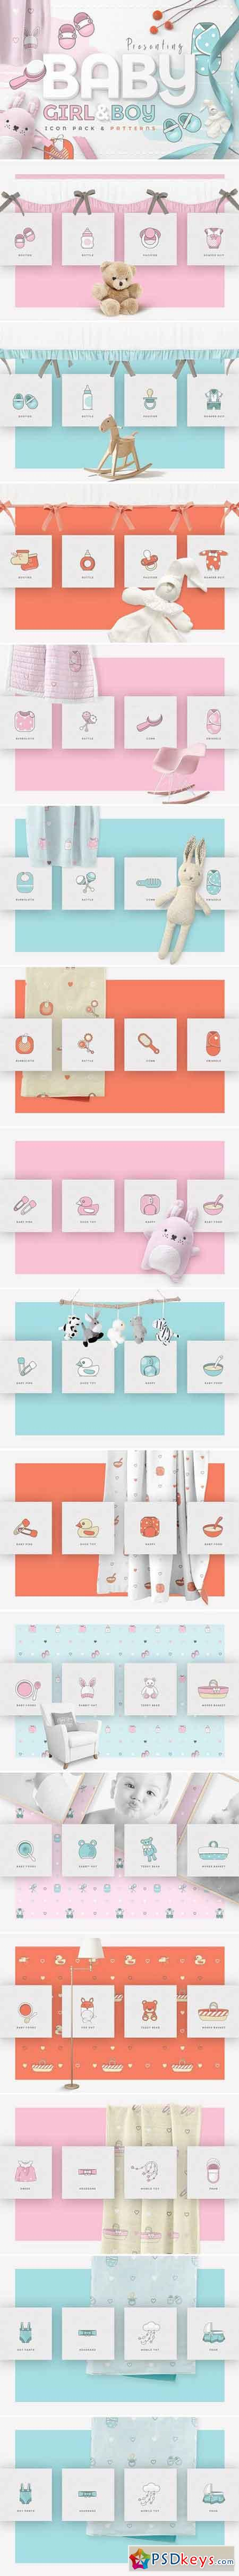 Baby Girl & Boy Icon Pack 2364683